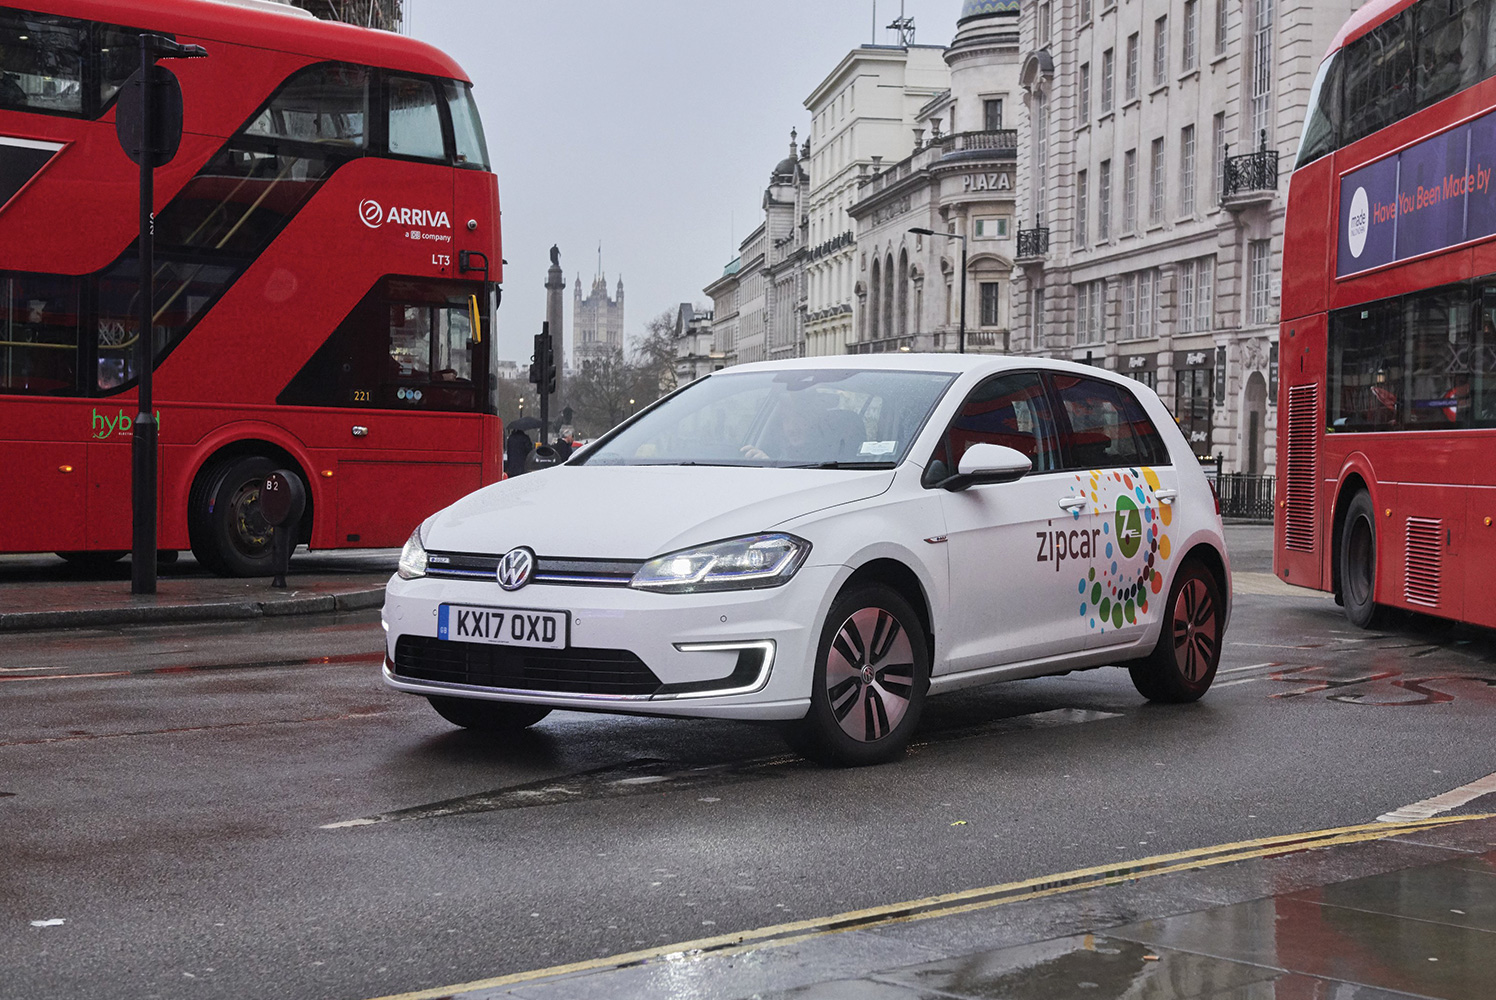 300 All-Electric VW e-Golfs Hit London's Streets